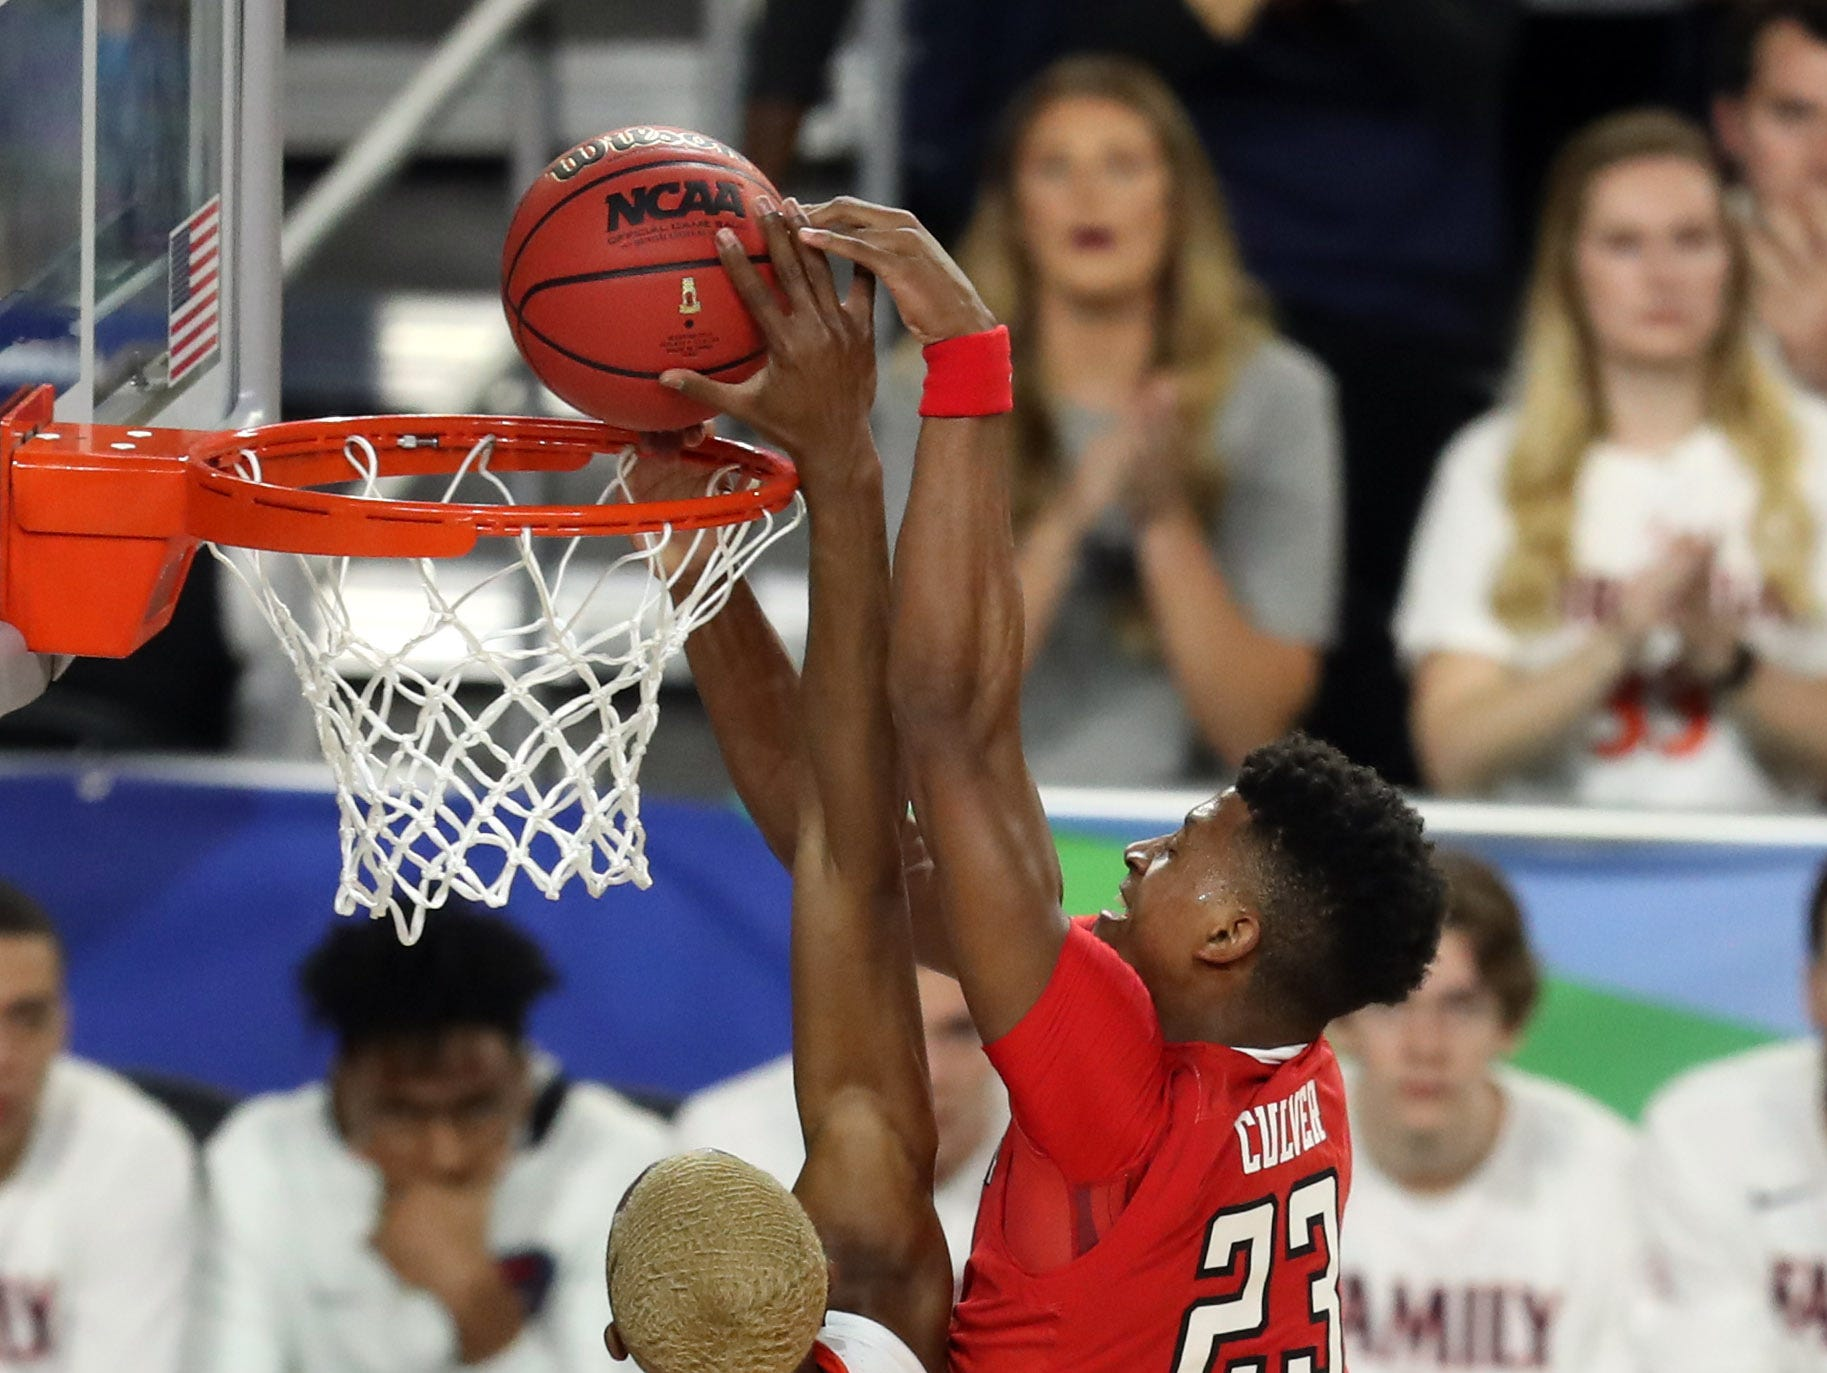 Apr 8, 2019; Minneapolis, MN, USA; Virginia Cavaliers forward Mamadi Diakite (25) blocks the shot of Texas Tech Red Raiders guard Jarrett Culver (23) during the first half in the championship game of the 2019 men's Final Four at US Bank Stadium. Mandatory Credit: Brace Hemmelgarn-USA TODAY Sports